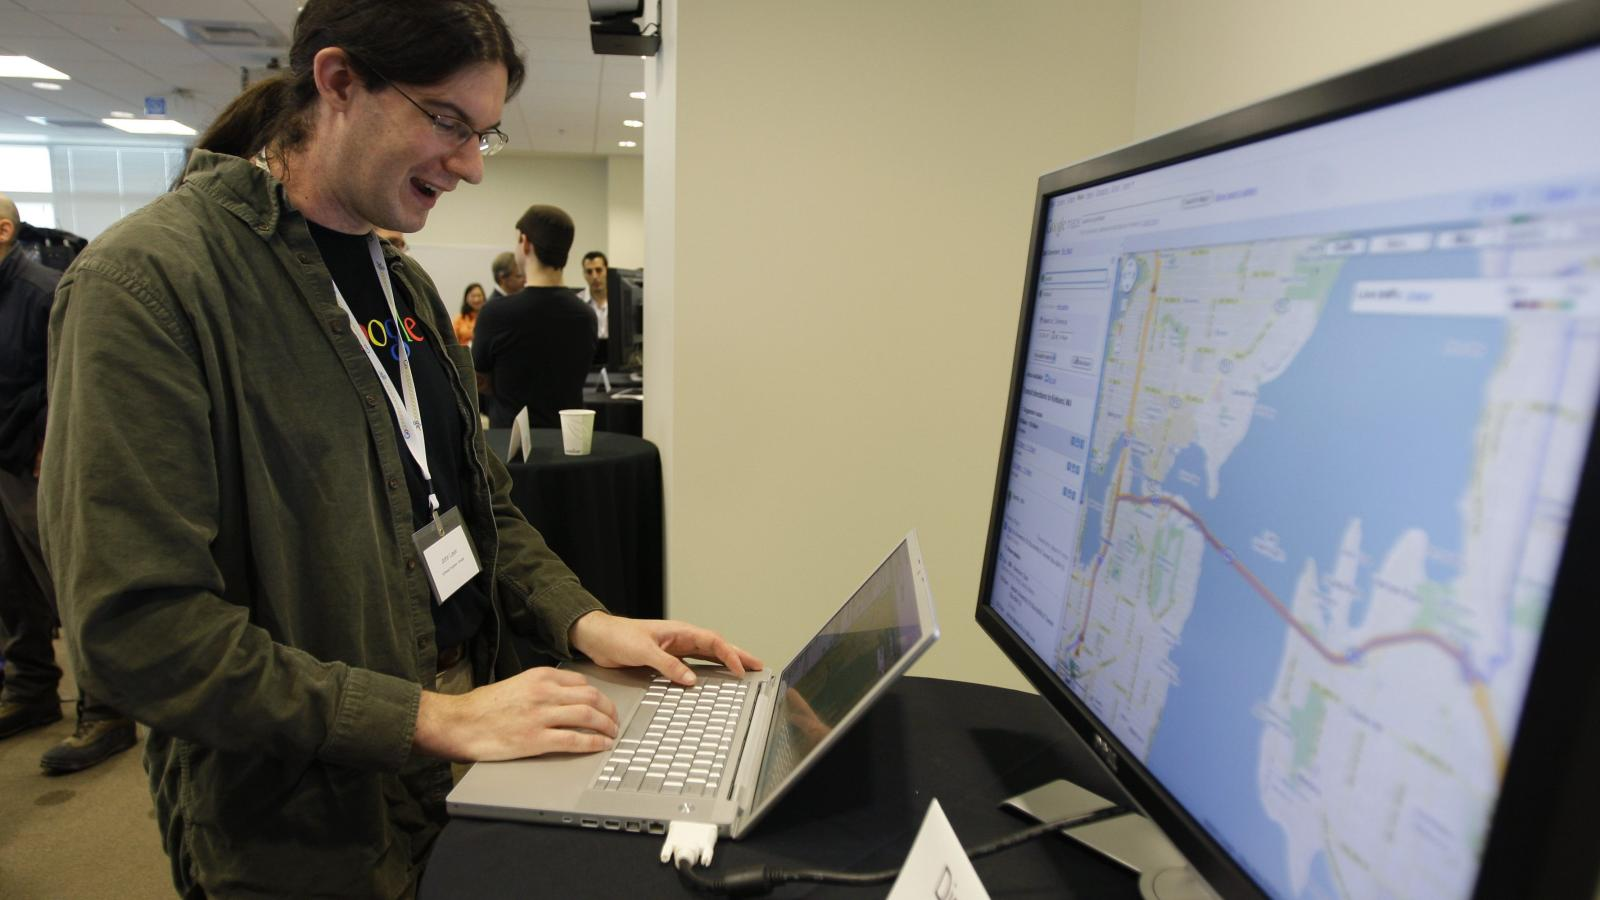 Software engineers' salaries are worth more in Austin